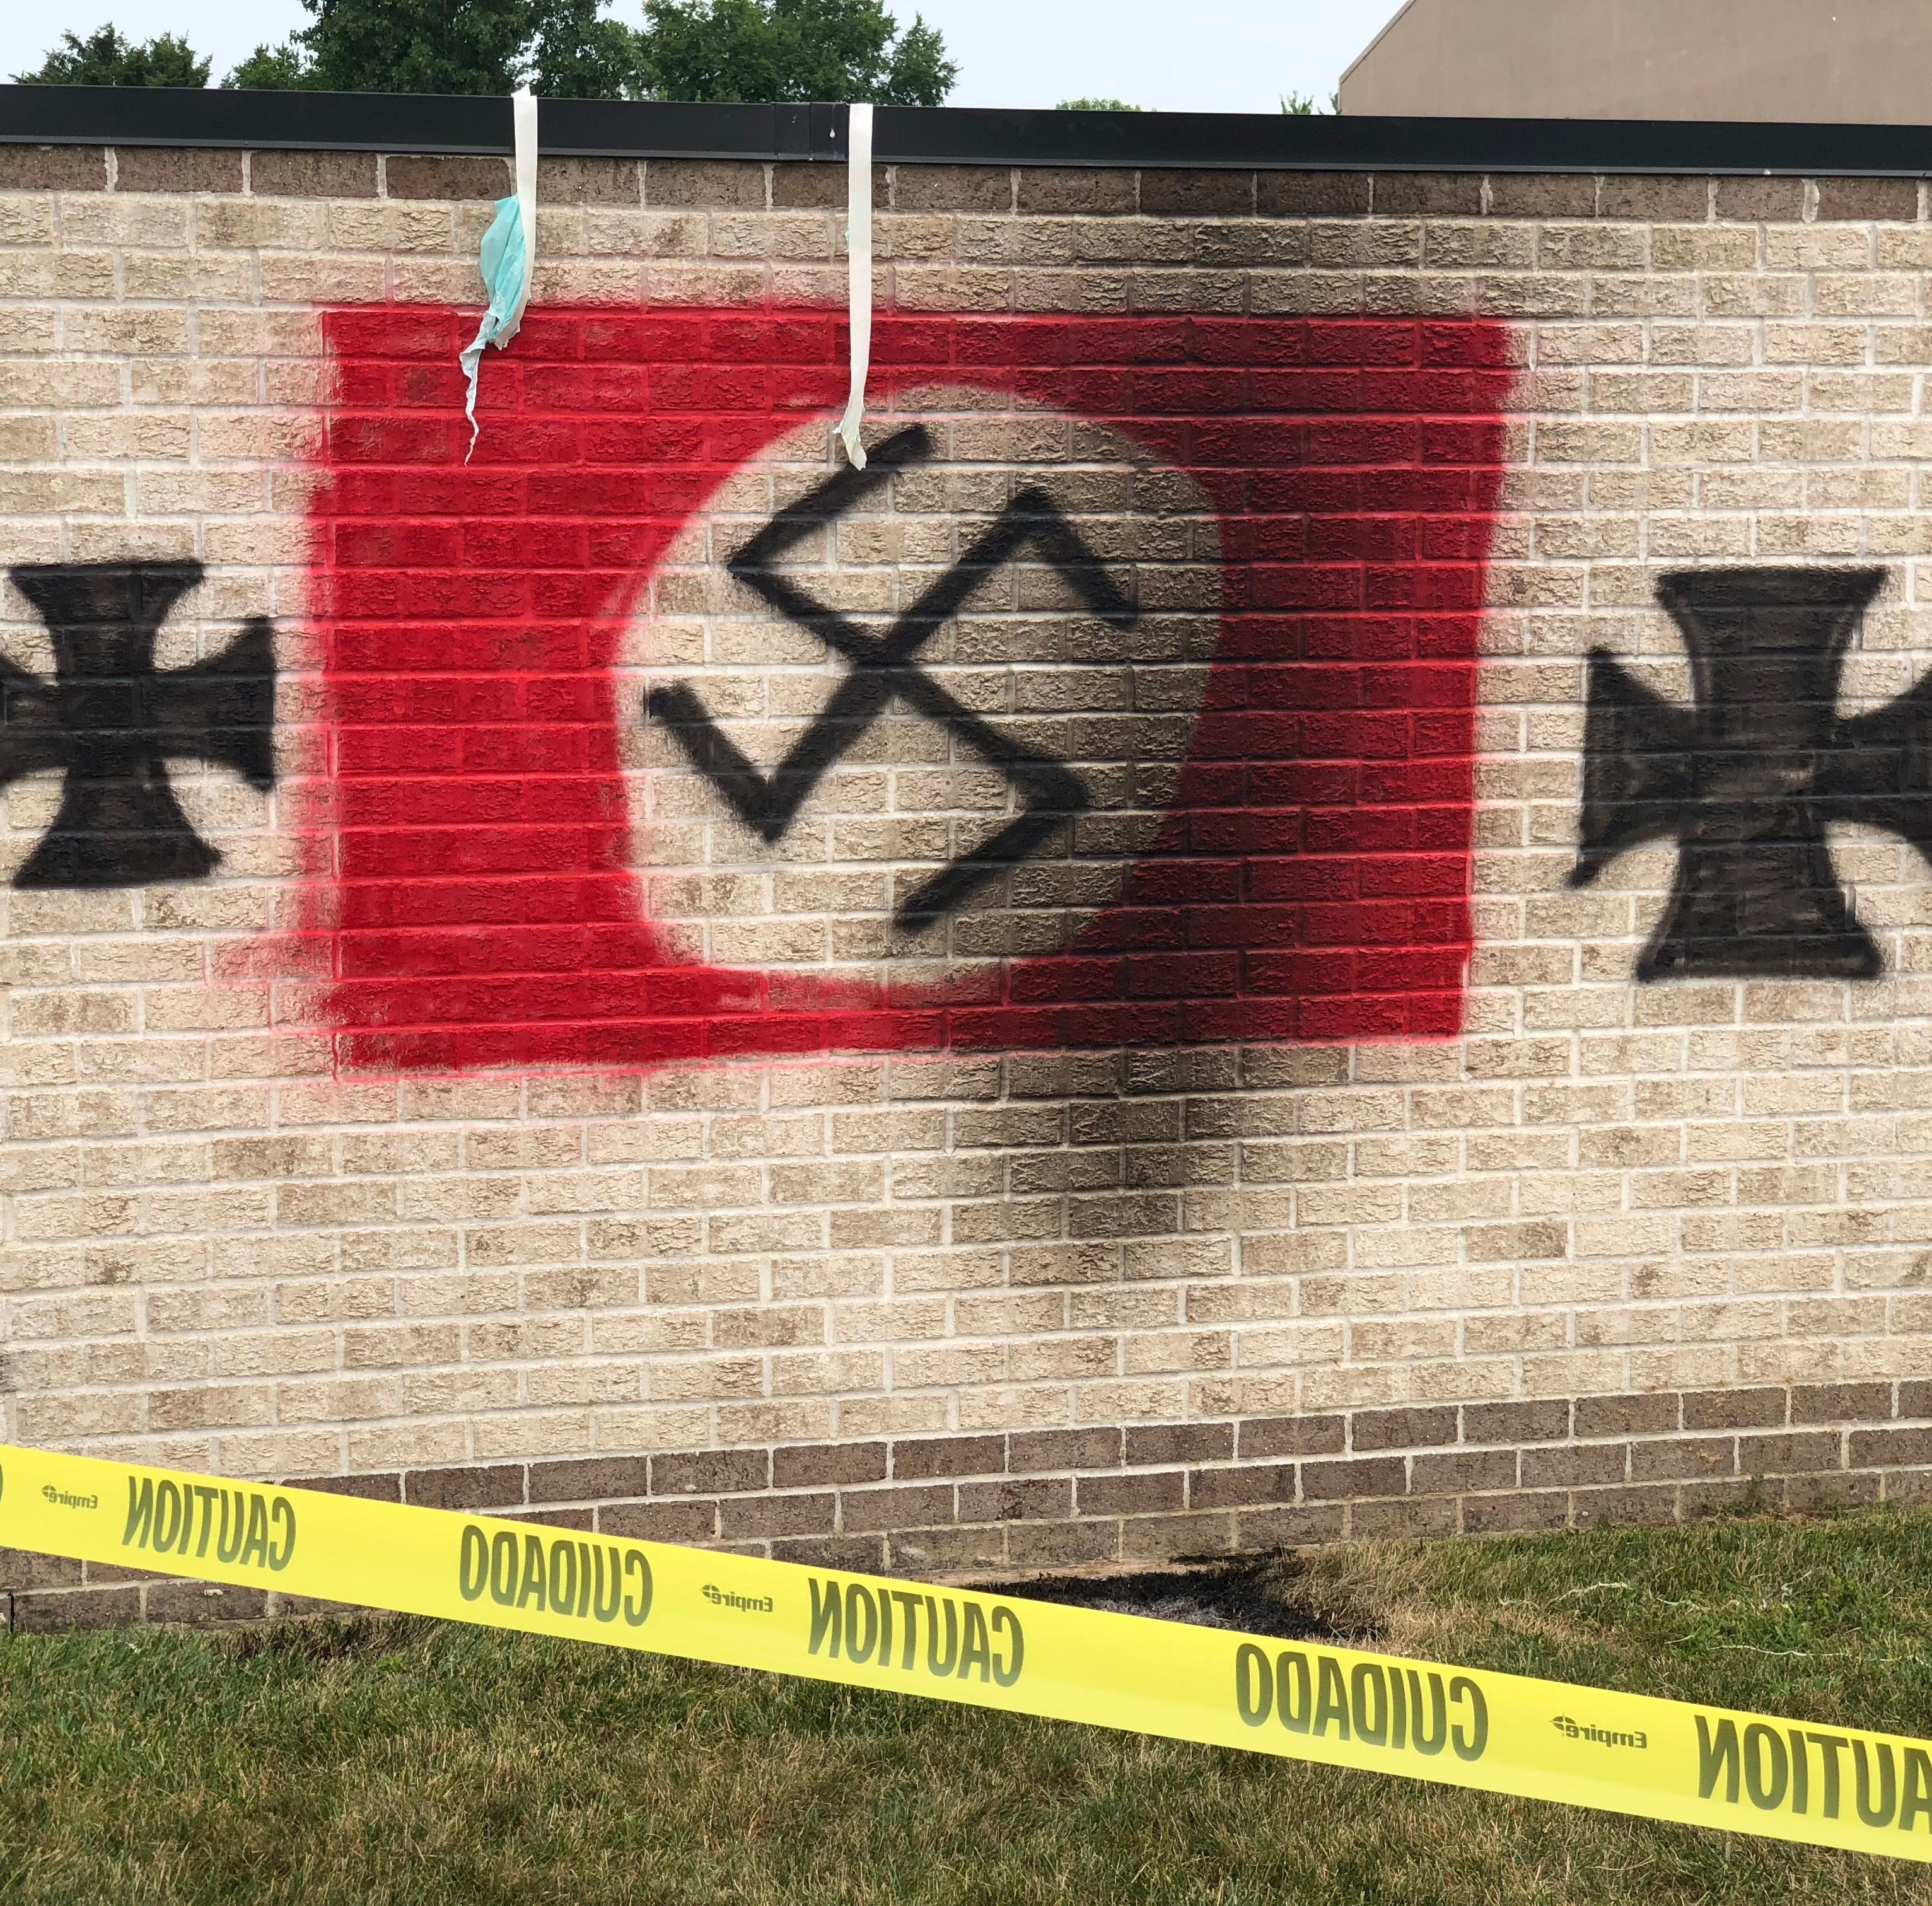 Vandals painted a Nazi flag on a garbage bin shed at Congregation Shaarey Tefilla on West 116th Street in Carmel, Ind.